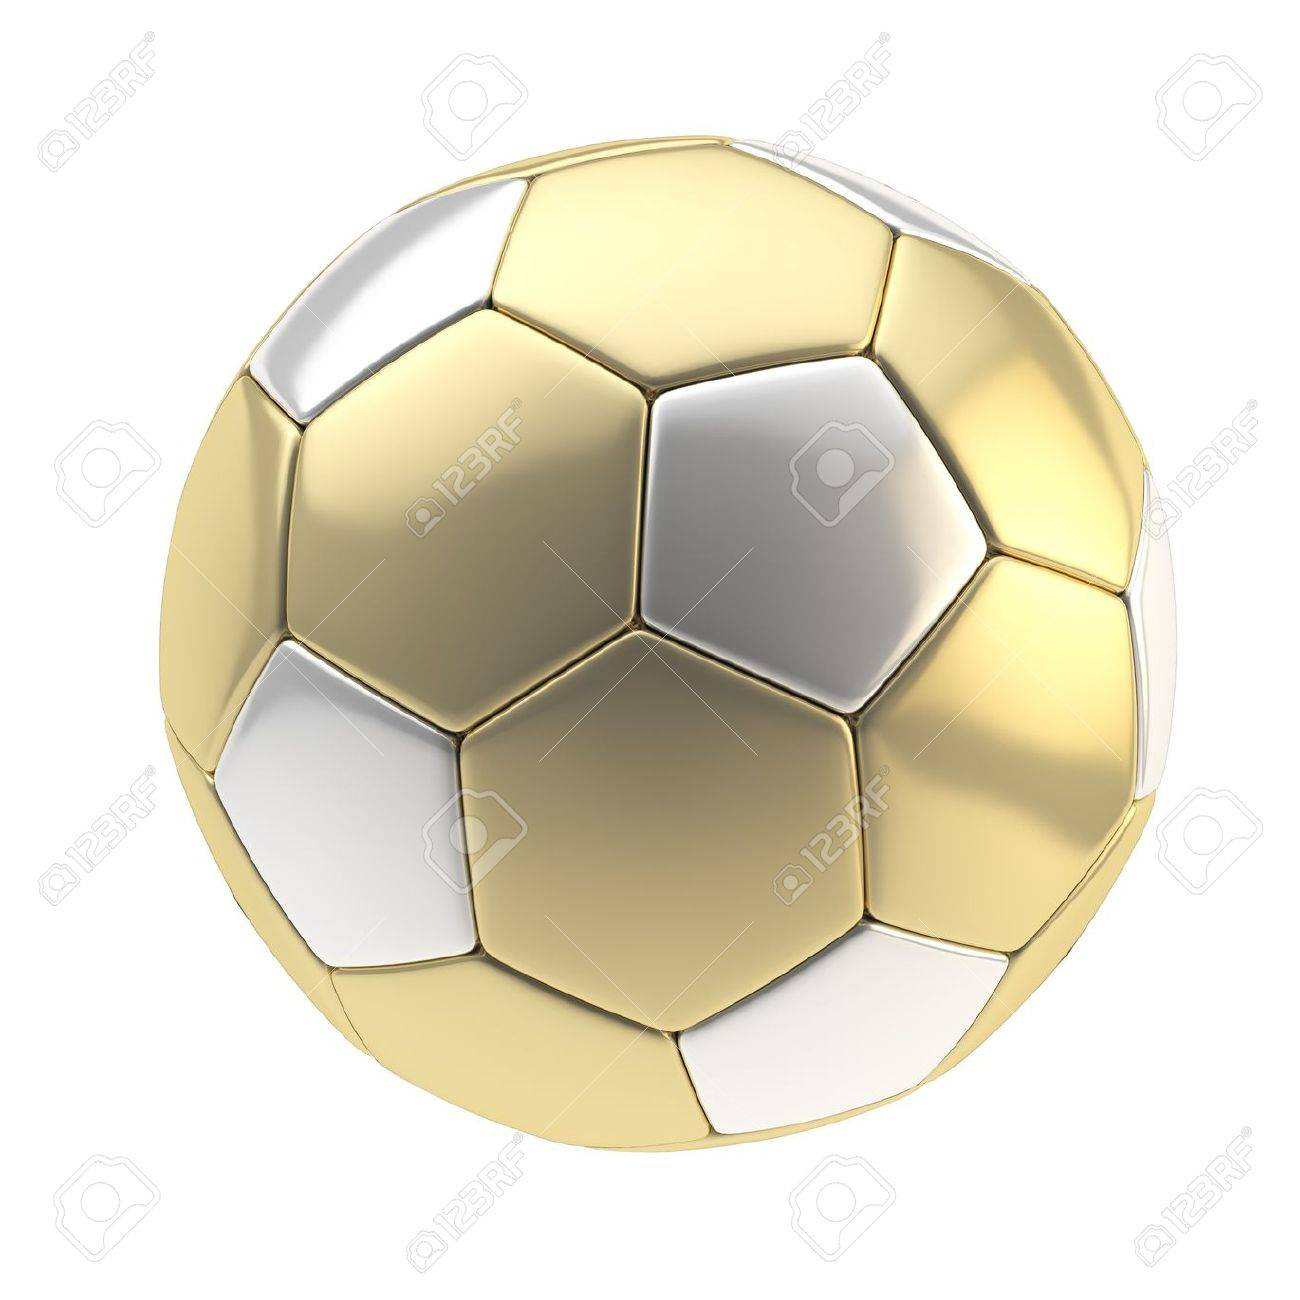 Gold and silver metallic football ball isolated on white Stock Photo - 13362660